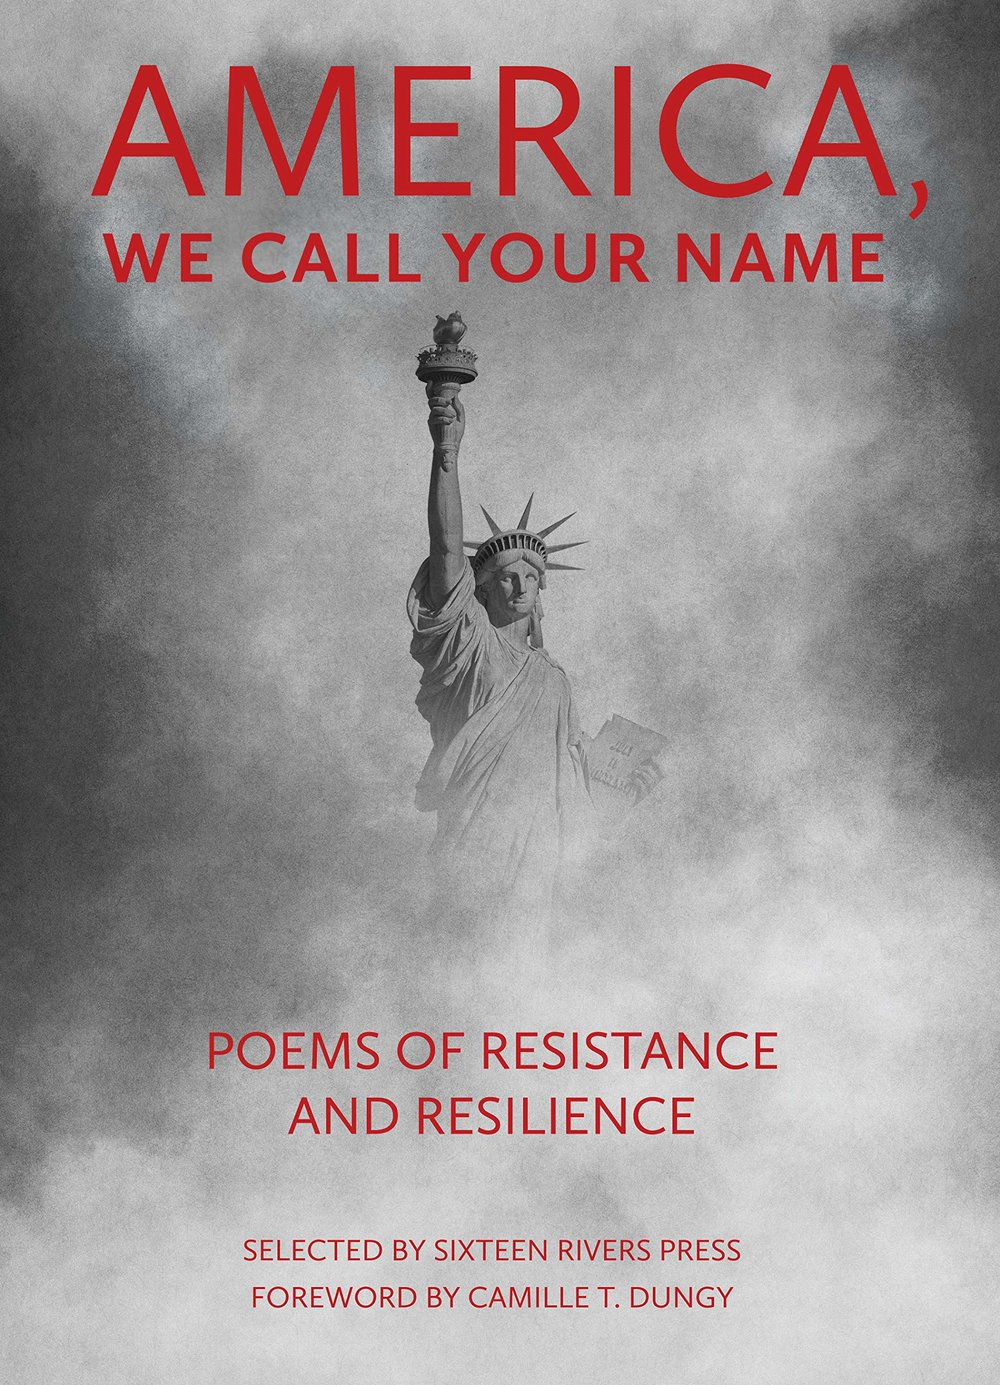 America, We Call Your Name: Poems of Resistence and Resilience  , edited by Murray Silverstein, Jerry Fleming, Lynne Knight, Carolyn Miller, Jeanne Wagner, and Helen Wickes.   YEAR: 2018 PUBLISHER: Sixteen Rivers Press  AVAILABLE FROM:  Sixteen Rivers Press   Small Press Distribution   Amazon